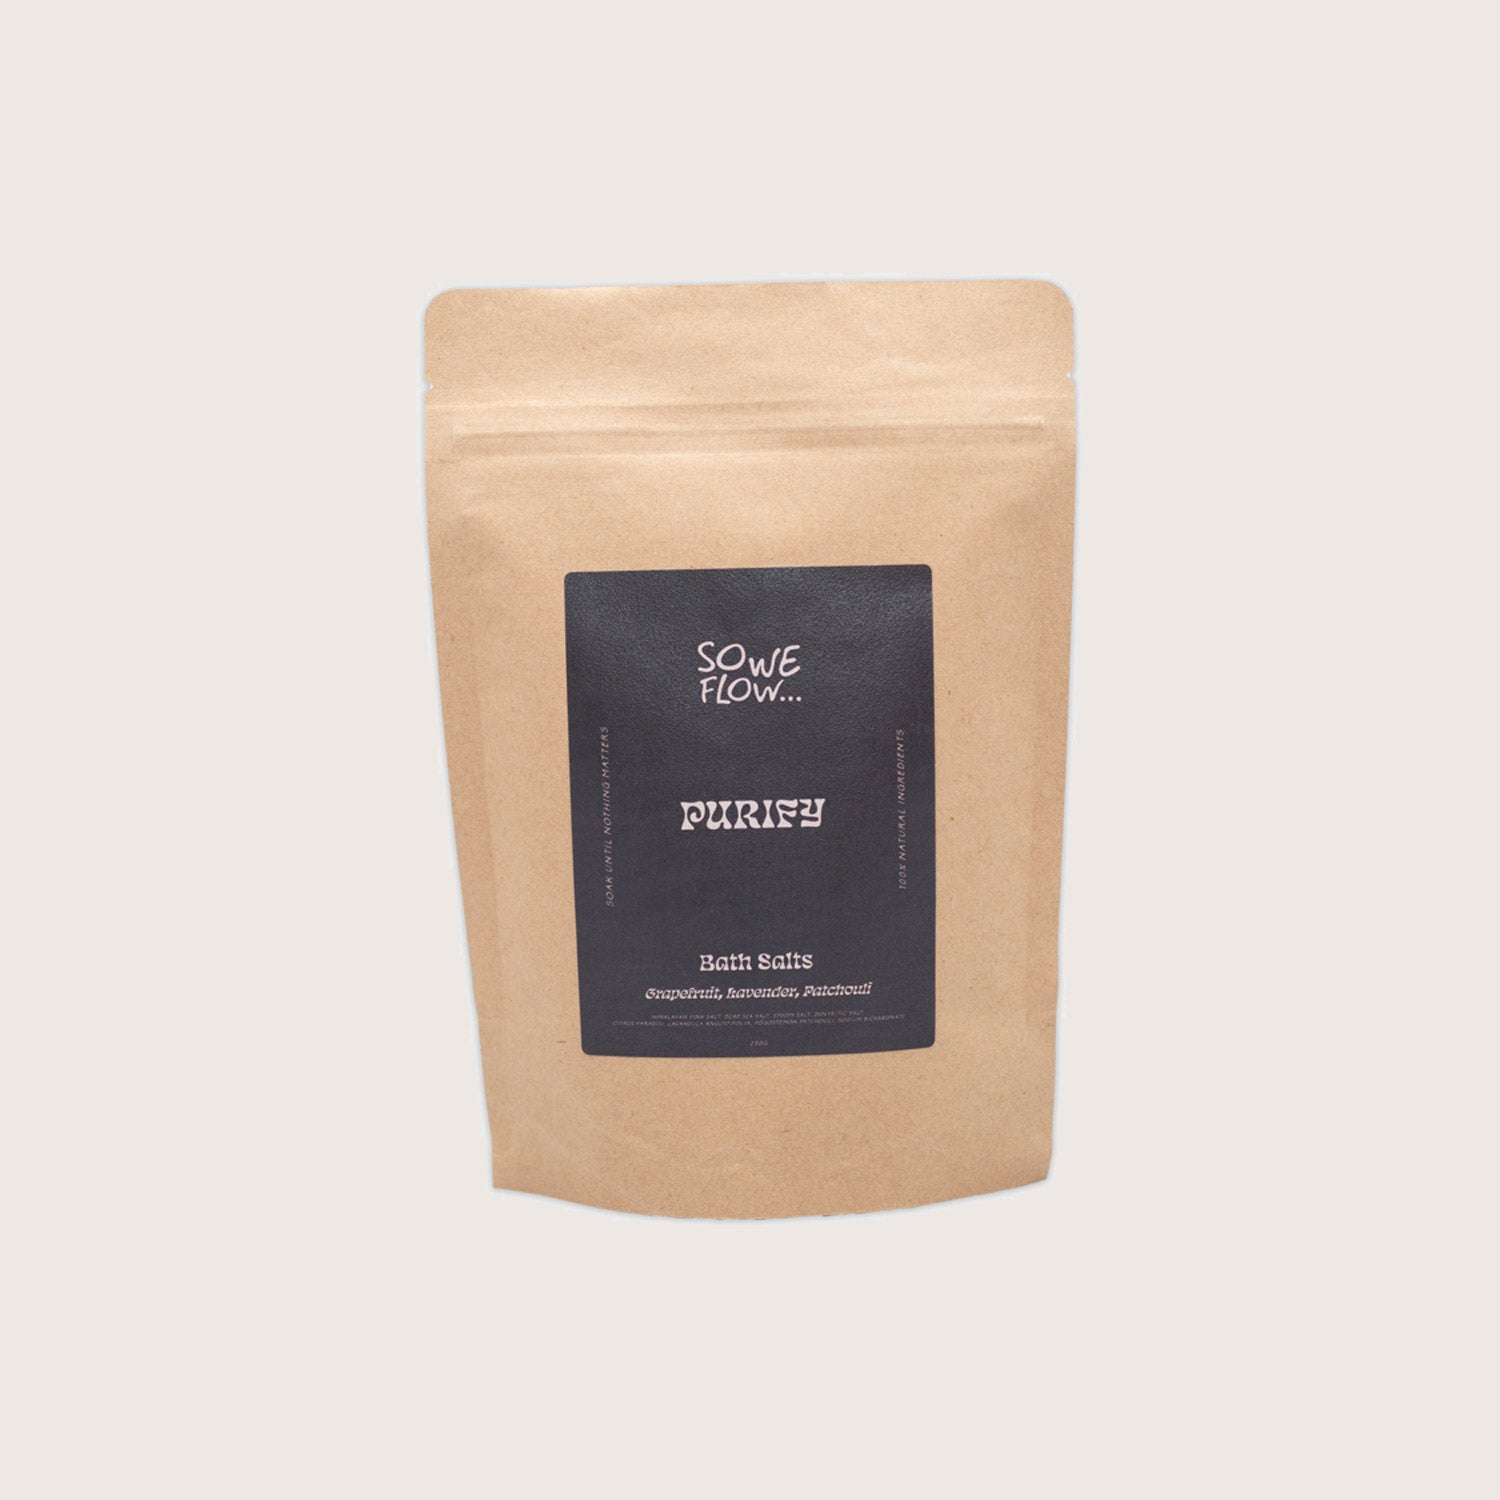 Purify - Bath Salts by So We Flow...